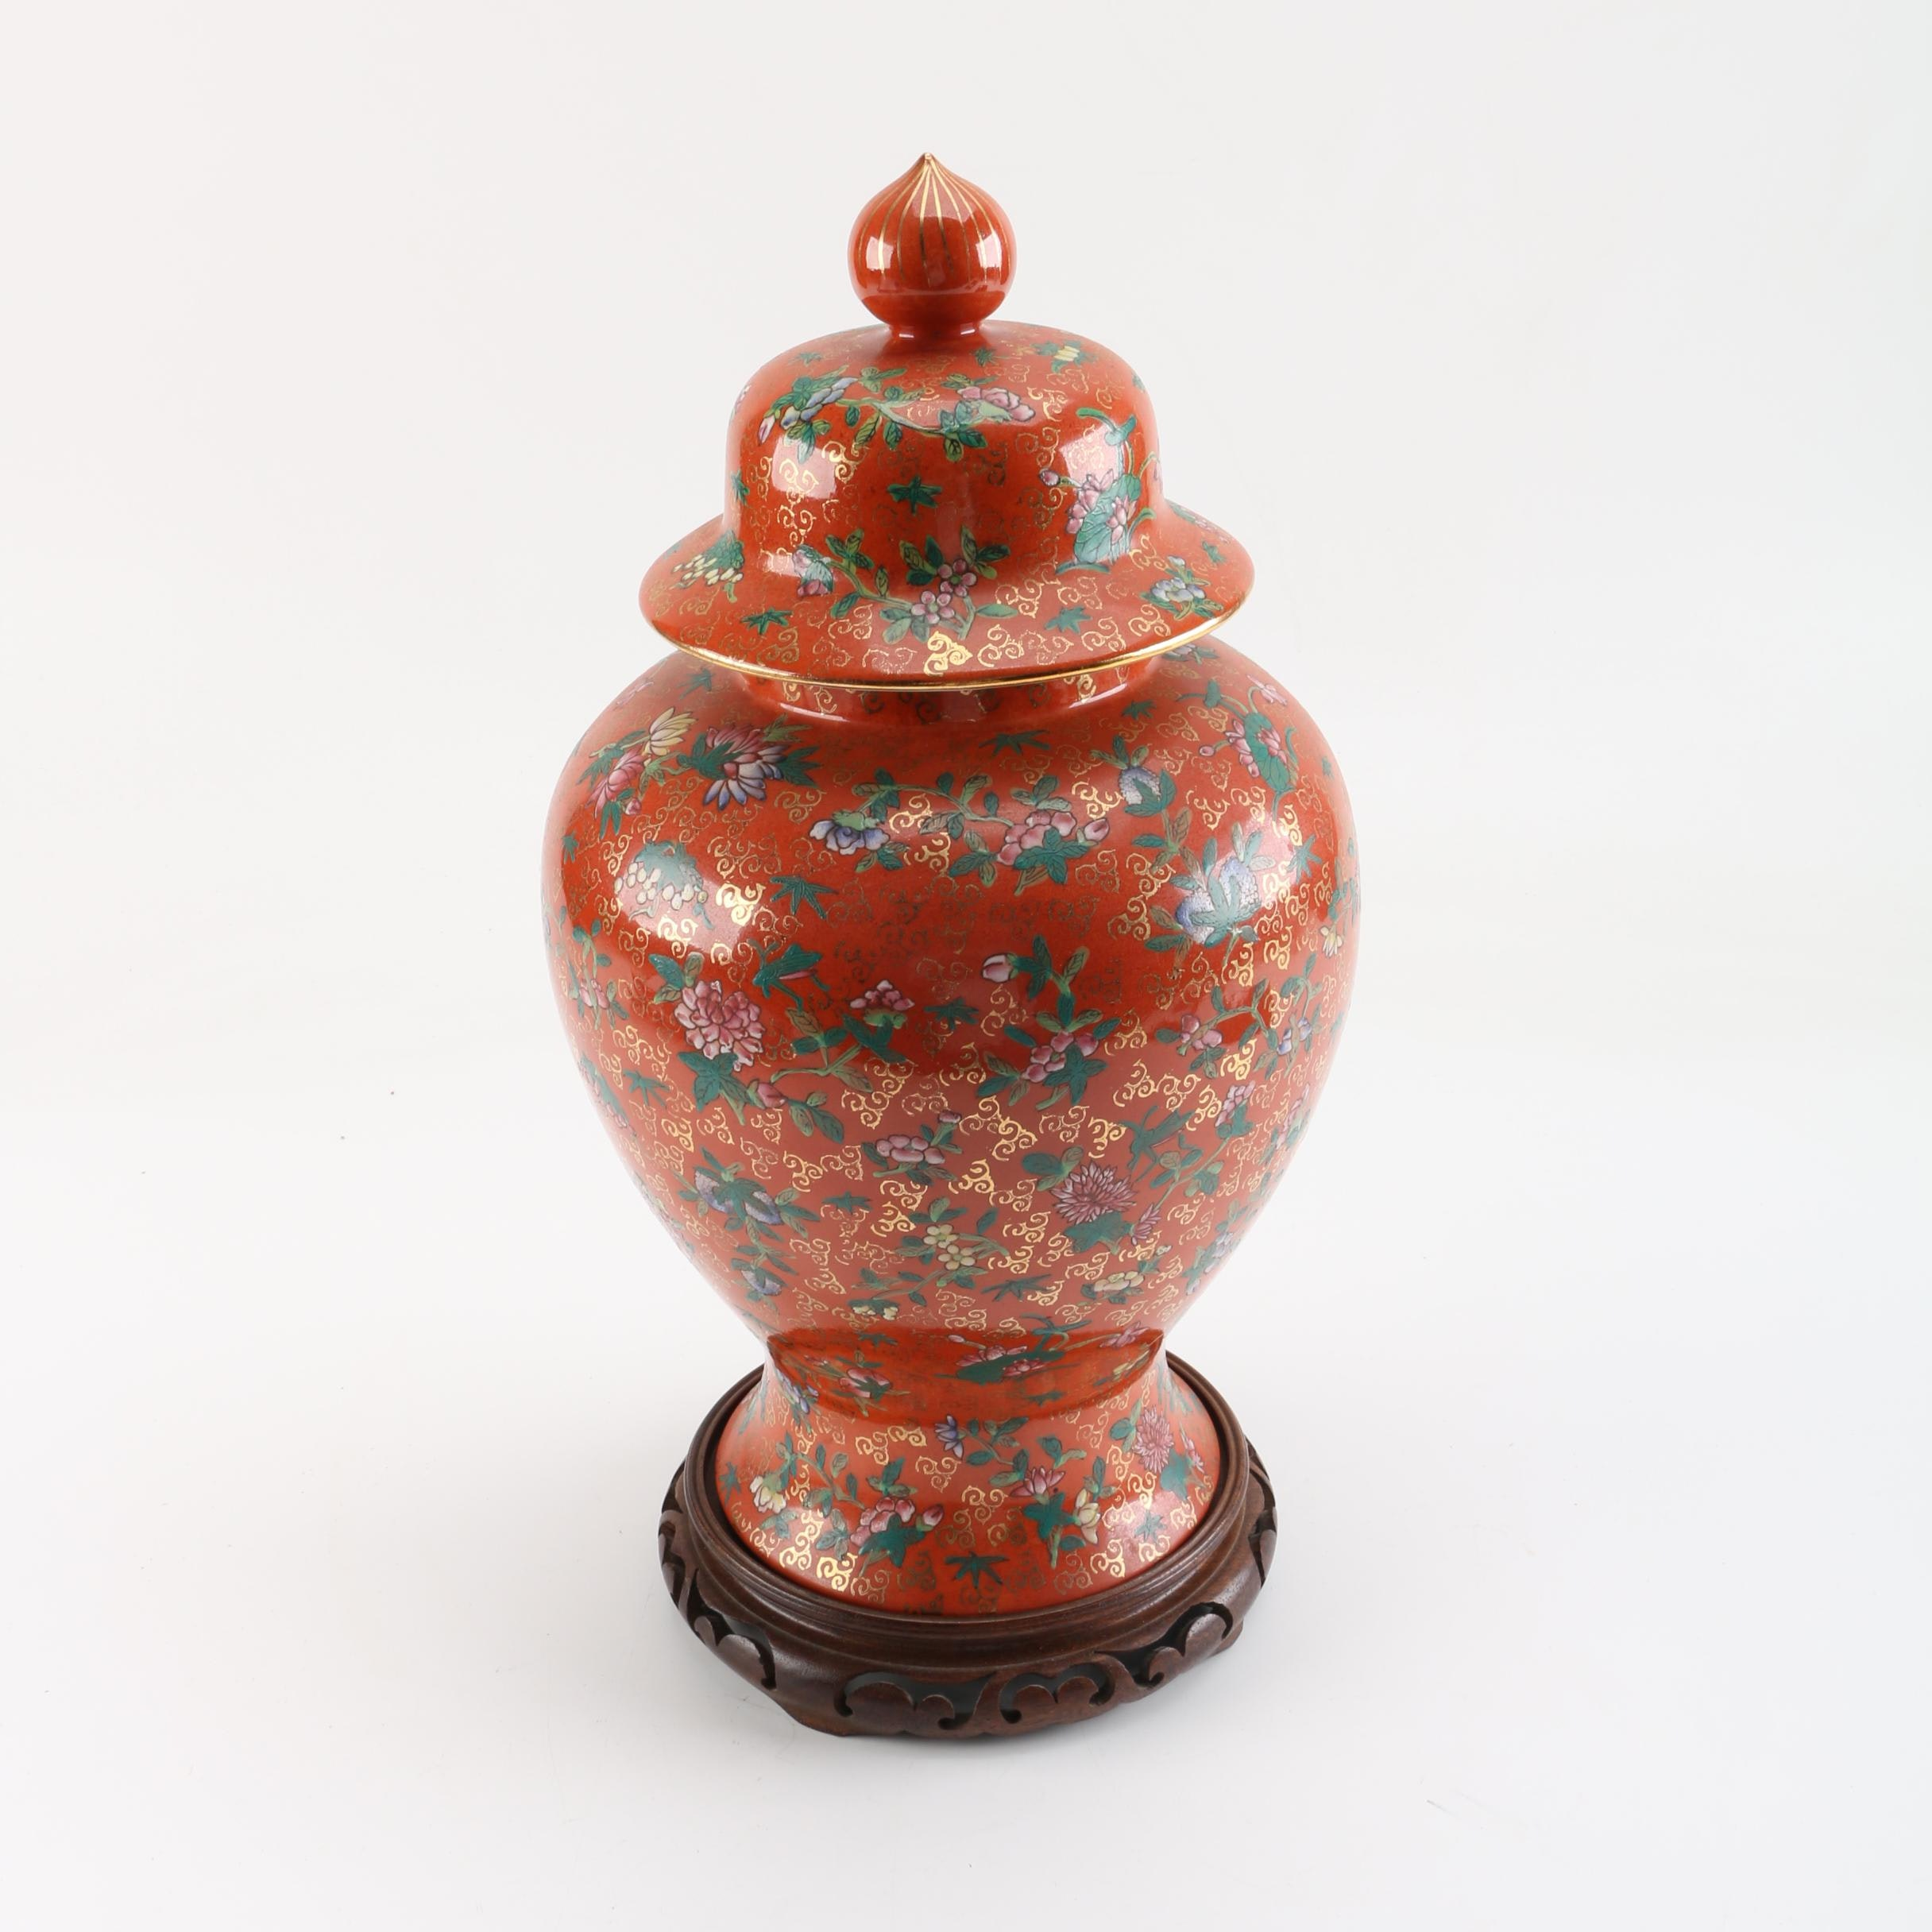 Chinese Ceramic Orange and Floral Urn with Wood Stand